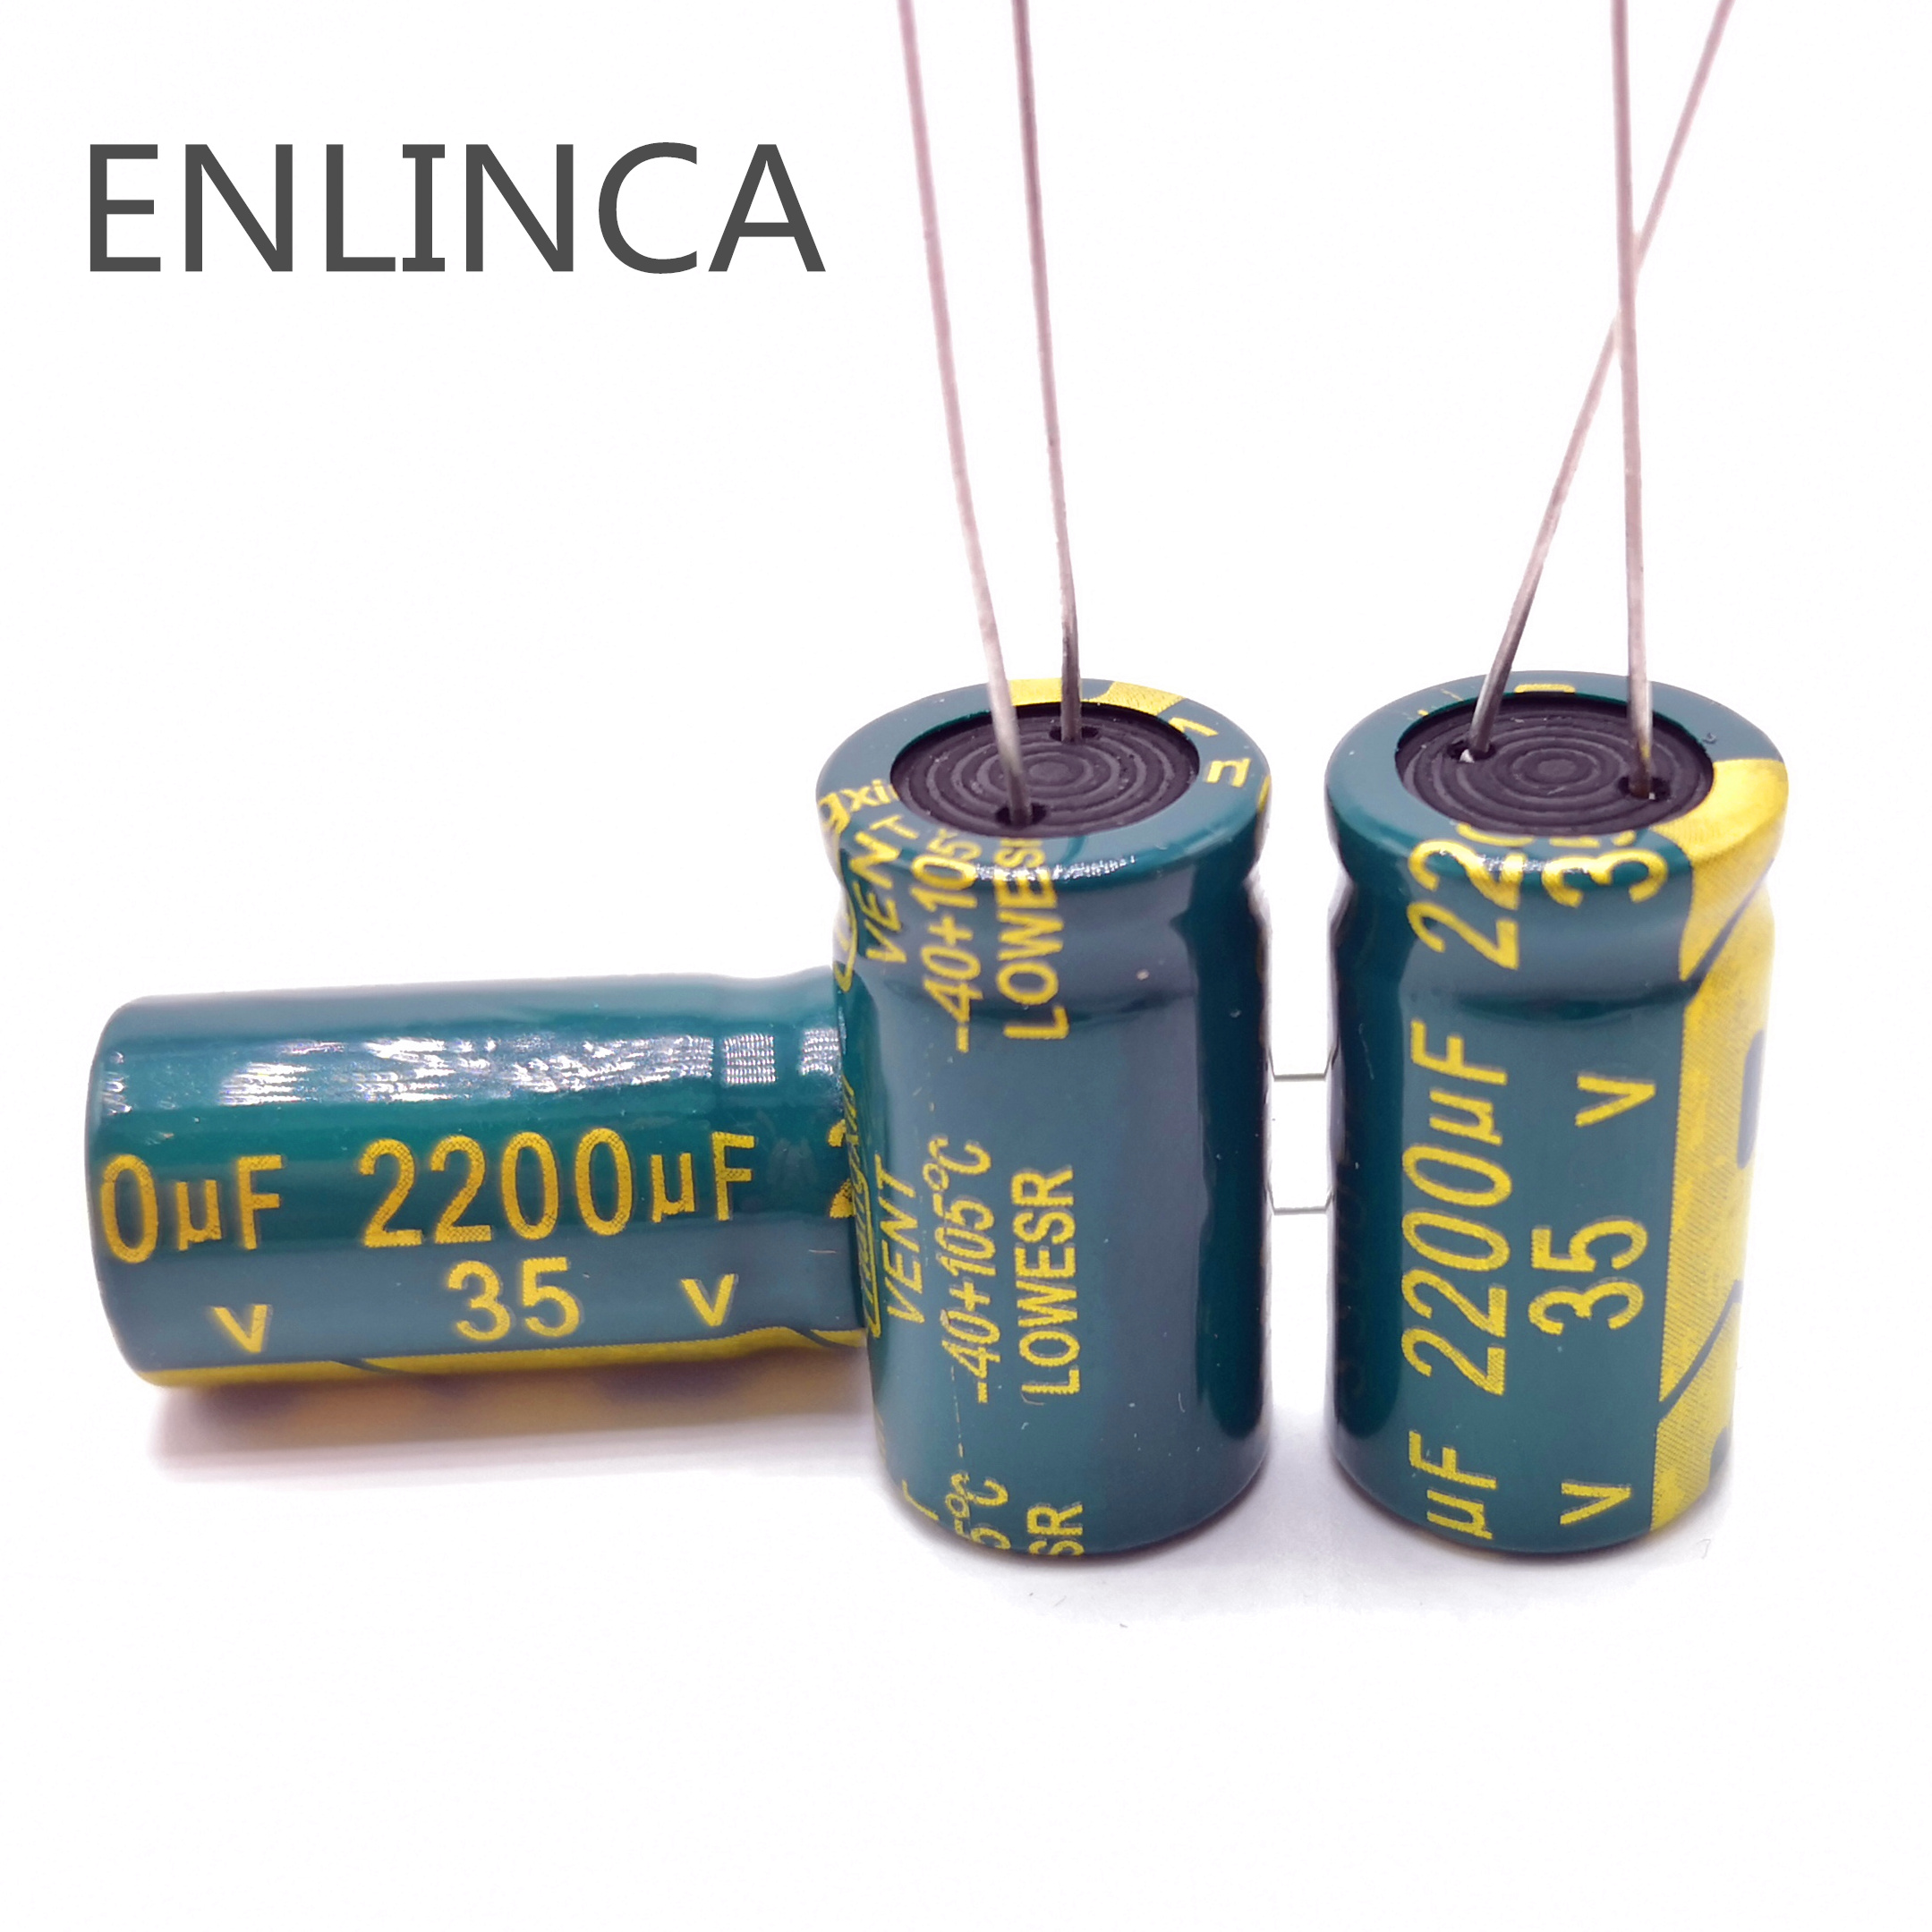 6pcs/lot H205 Low ESR/Impedance High Frequency 35v 2200UF Aluminum Electrolytic Capacitor Size 13*25 2200UF35V